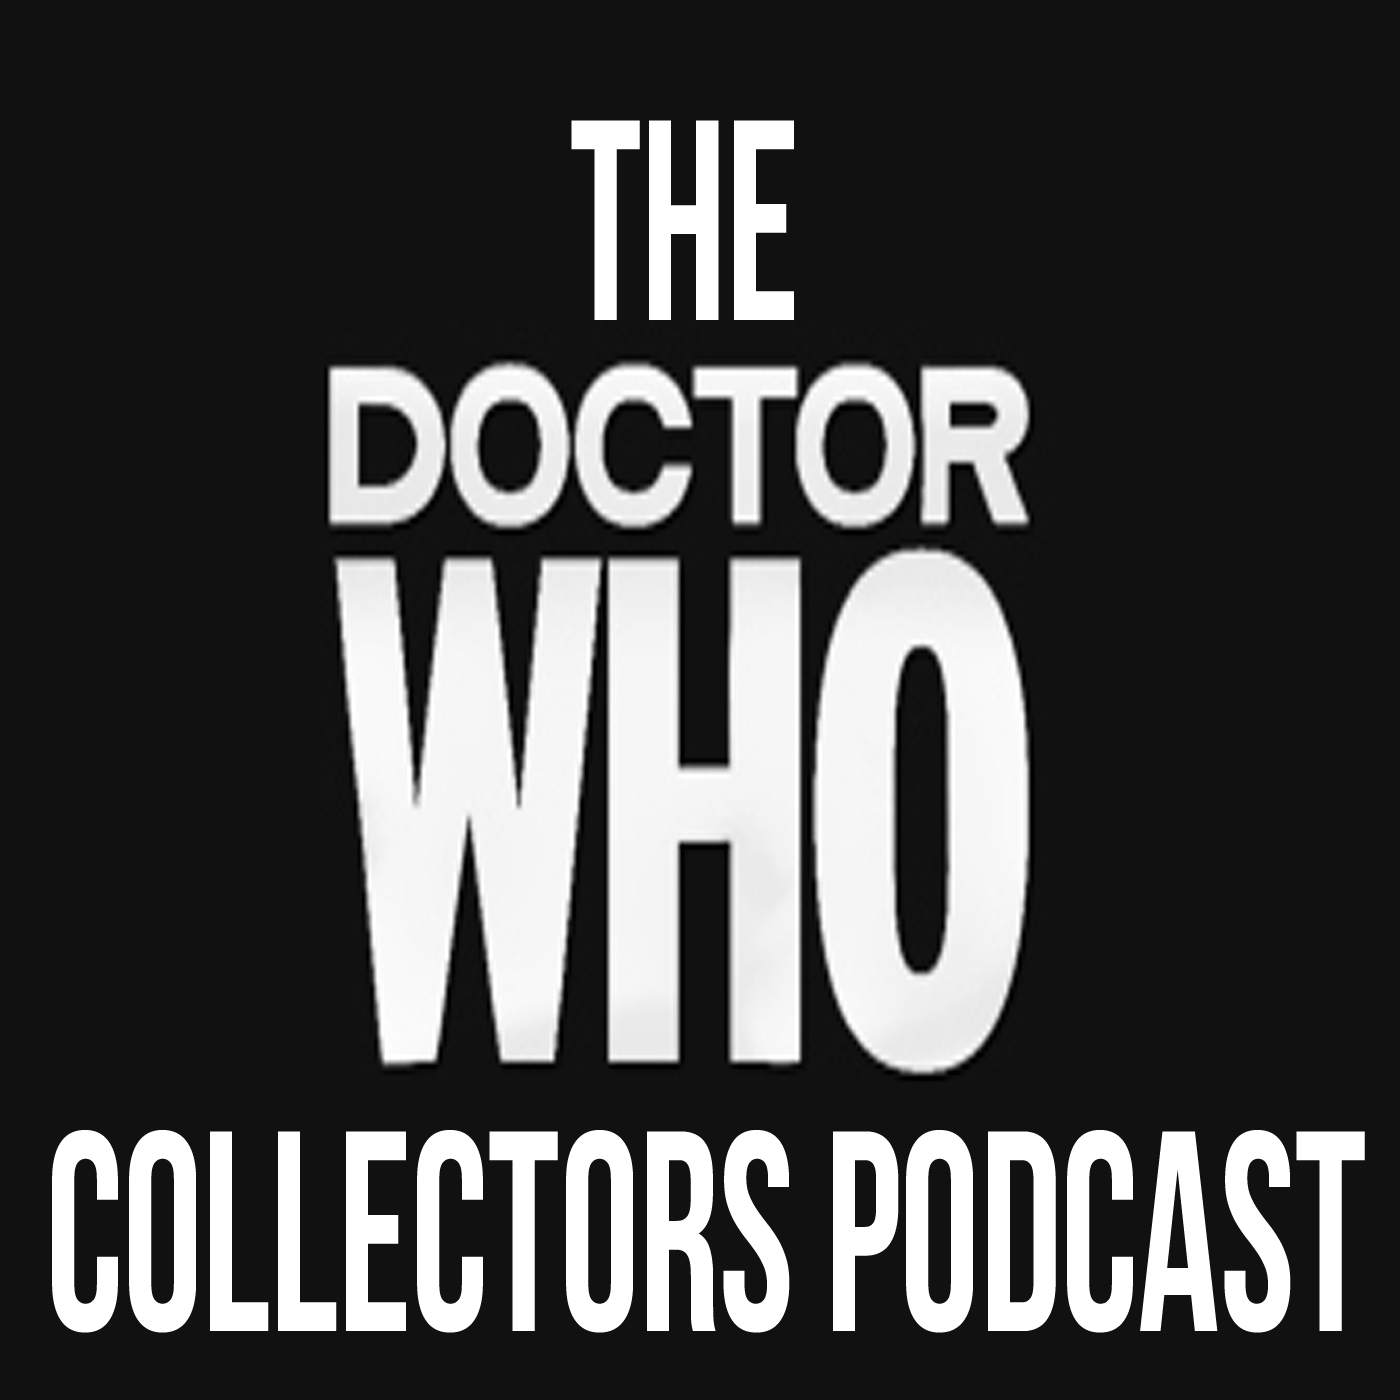 Thumbnail for Episode 5 – Doctor Who on Pinnacle: Collectible or waste of time?